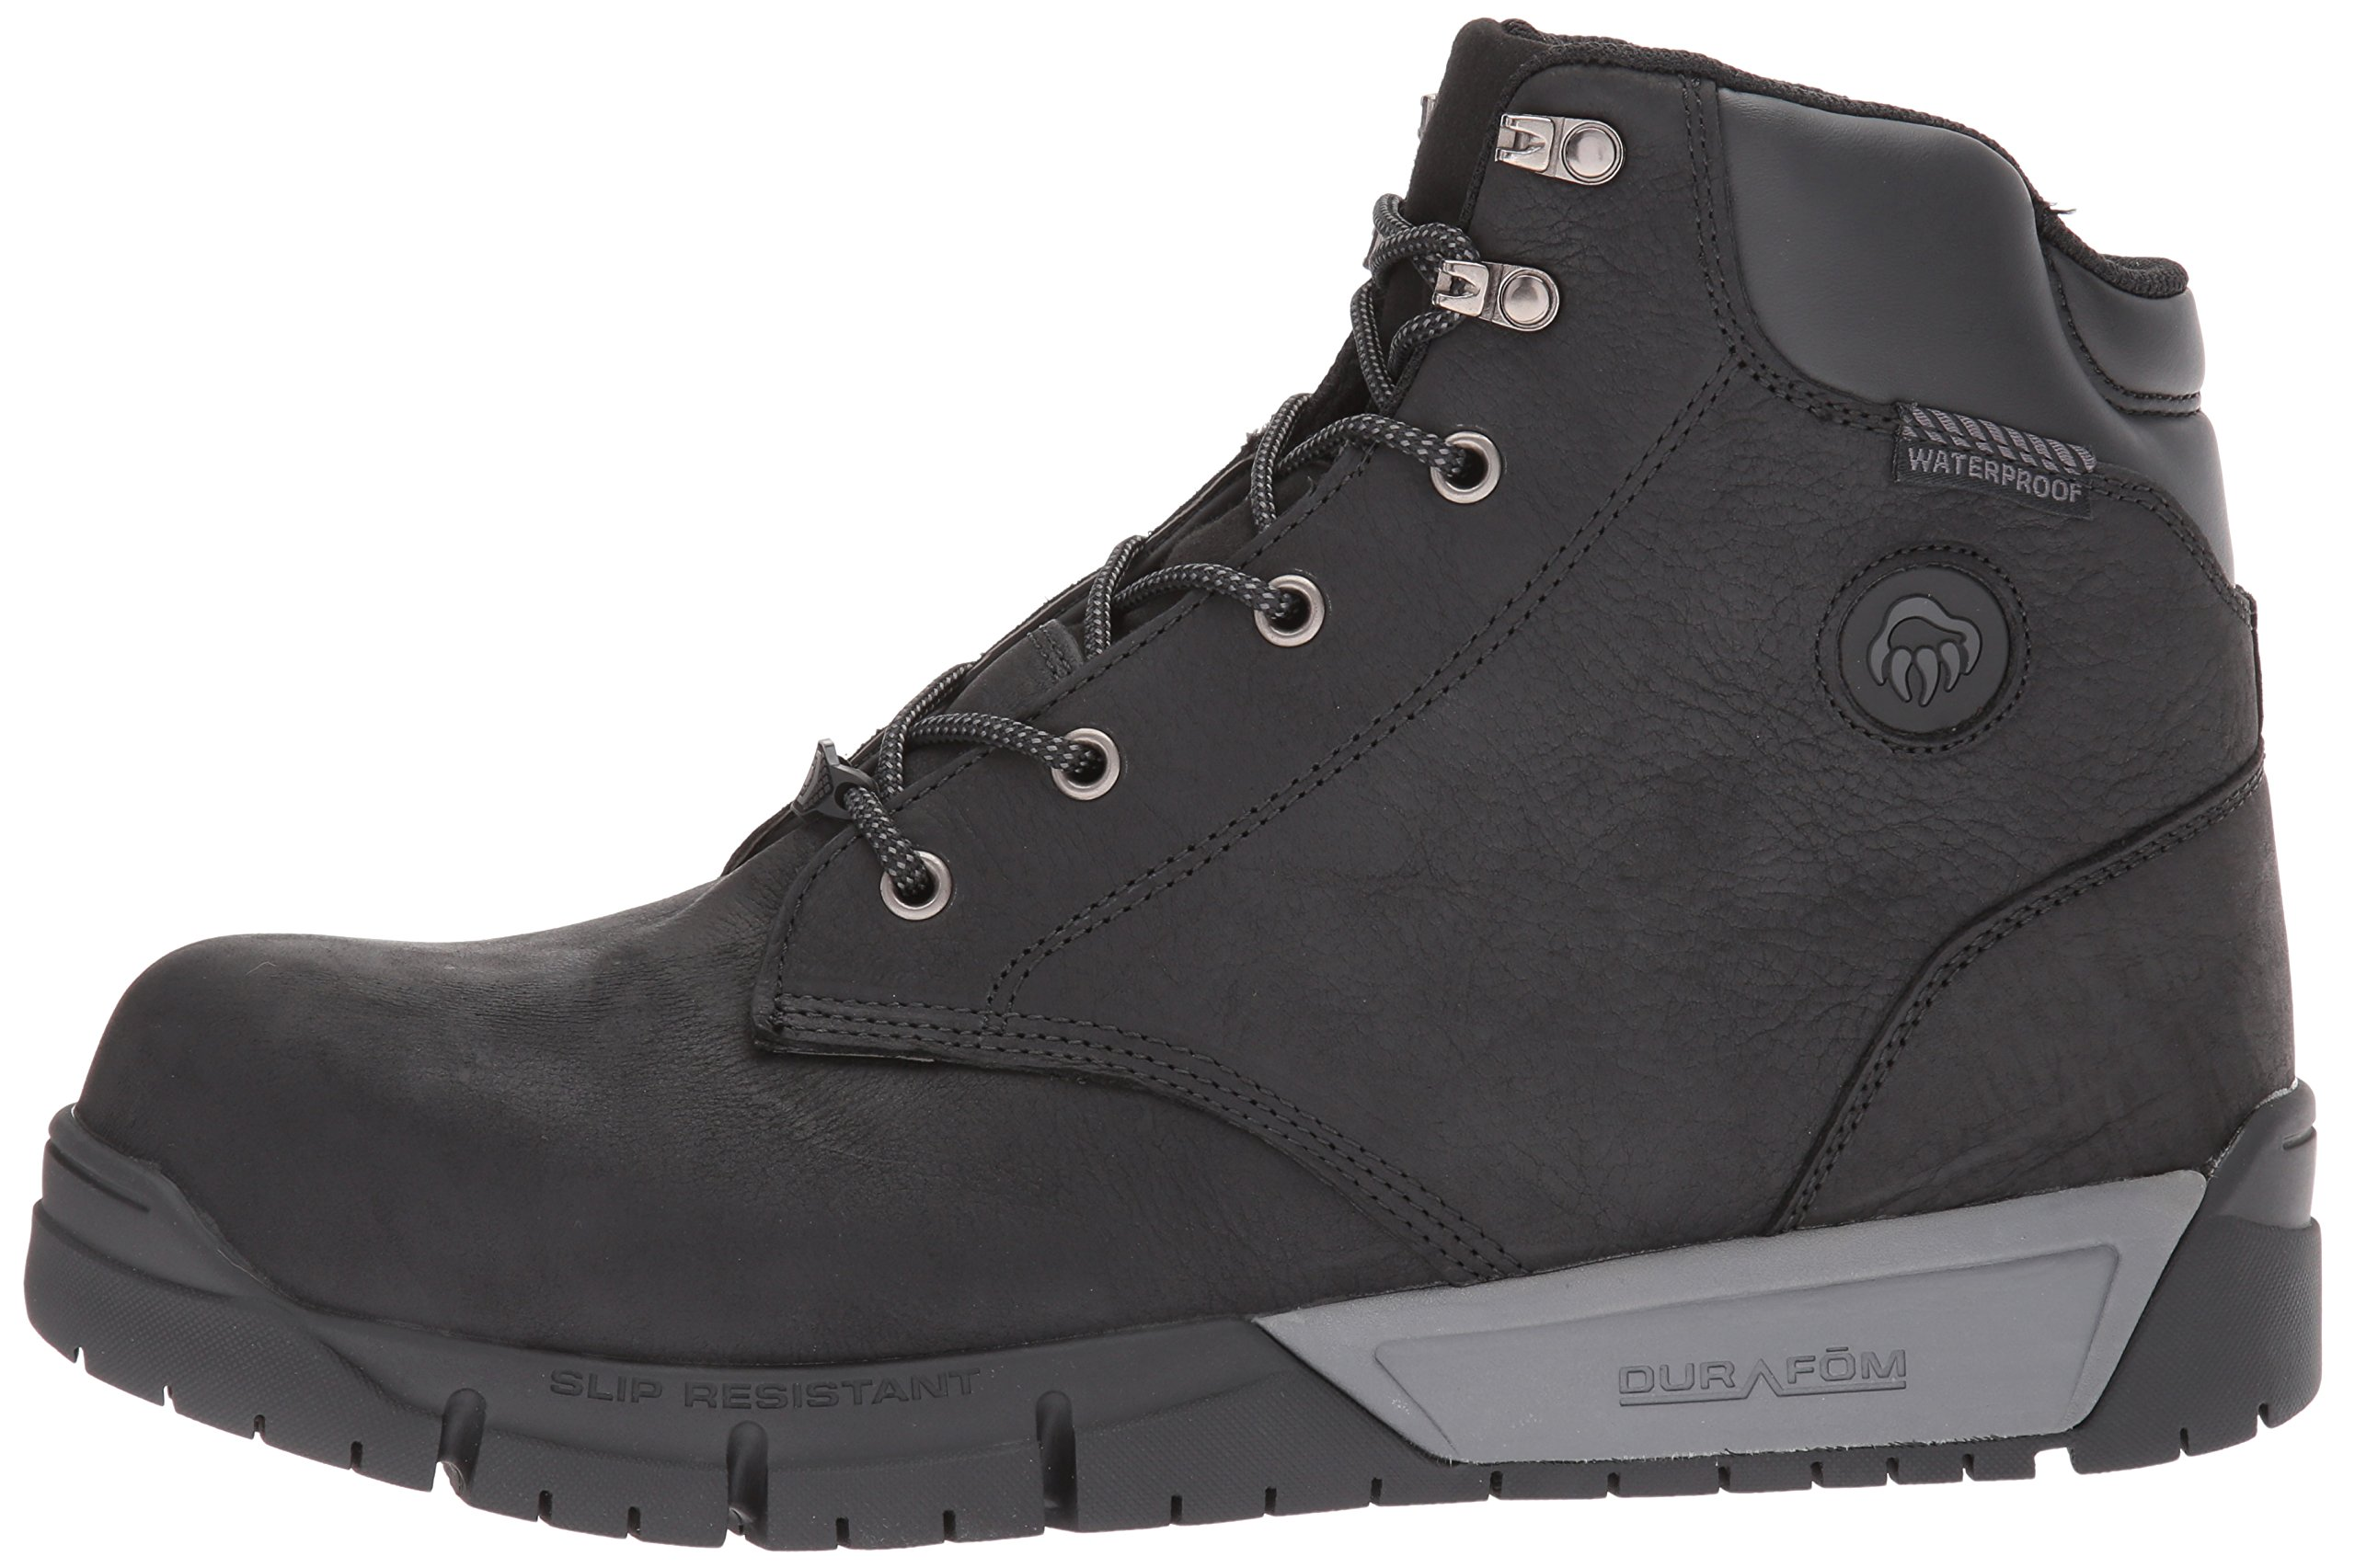 Wolverine Men's Mauler LX Composite Toe Waterproof Work Boot Black 7 W US by Wolverine (Image #5)